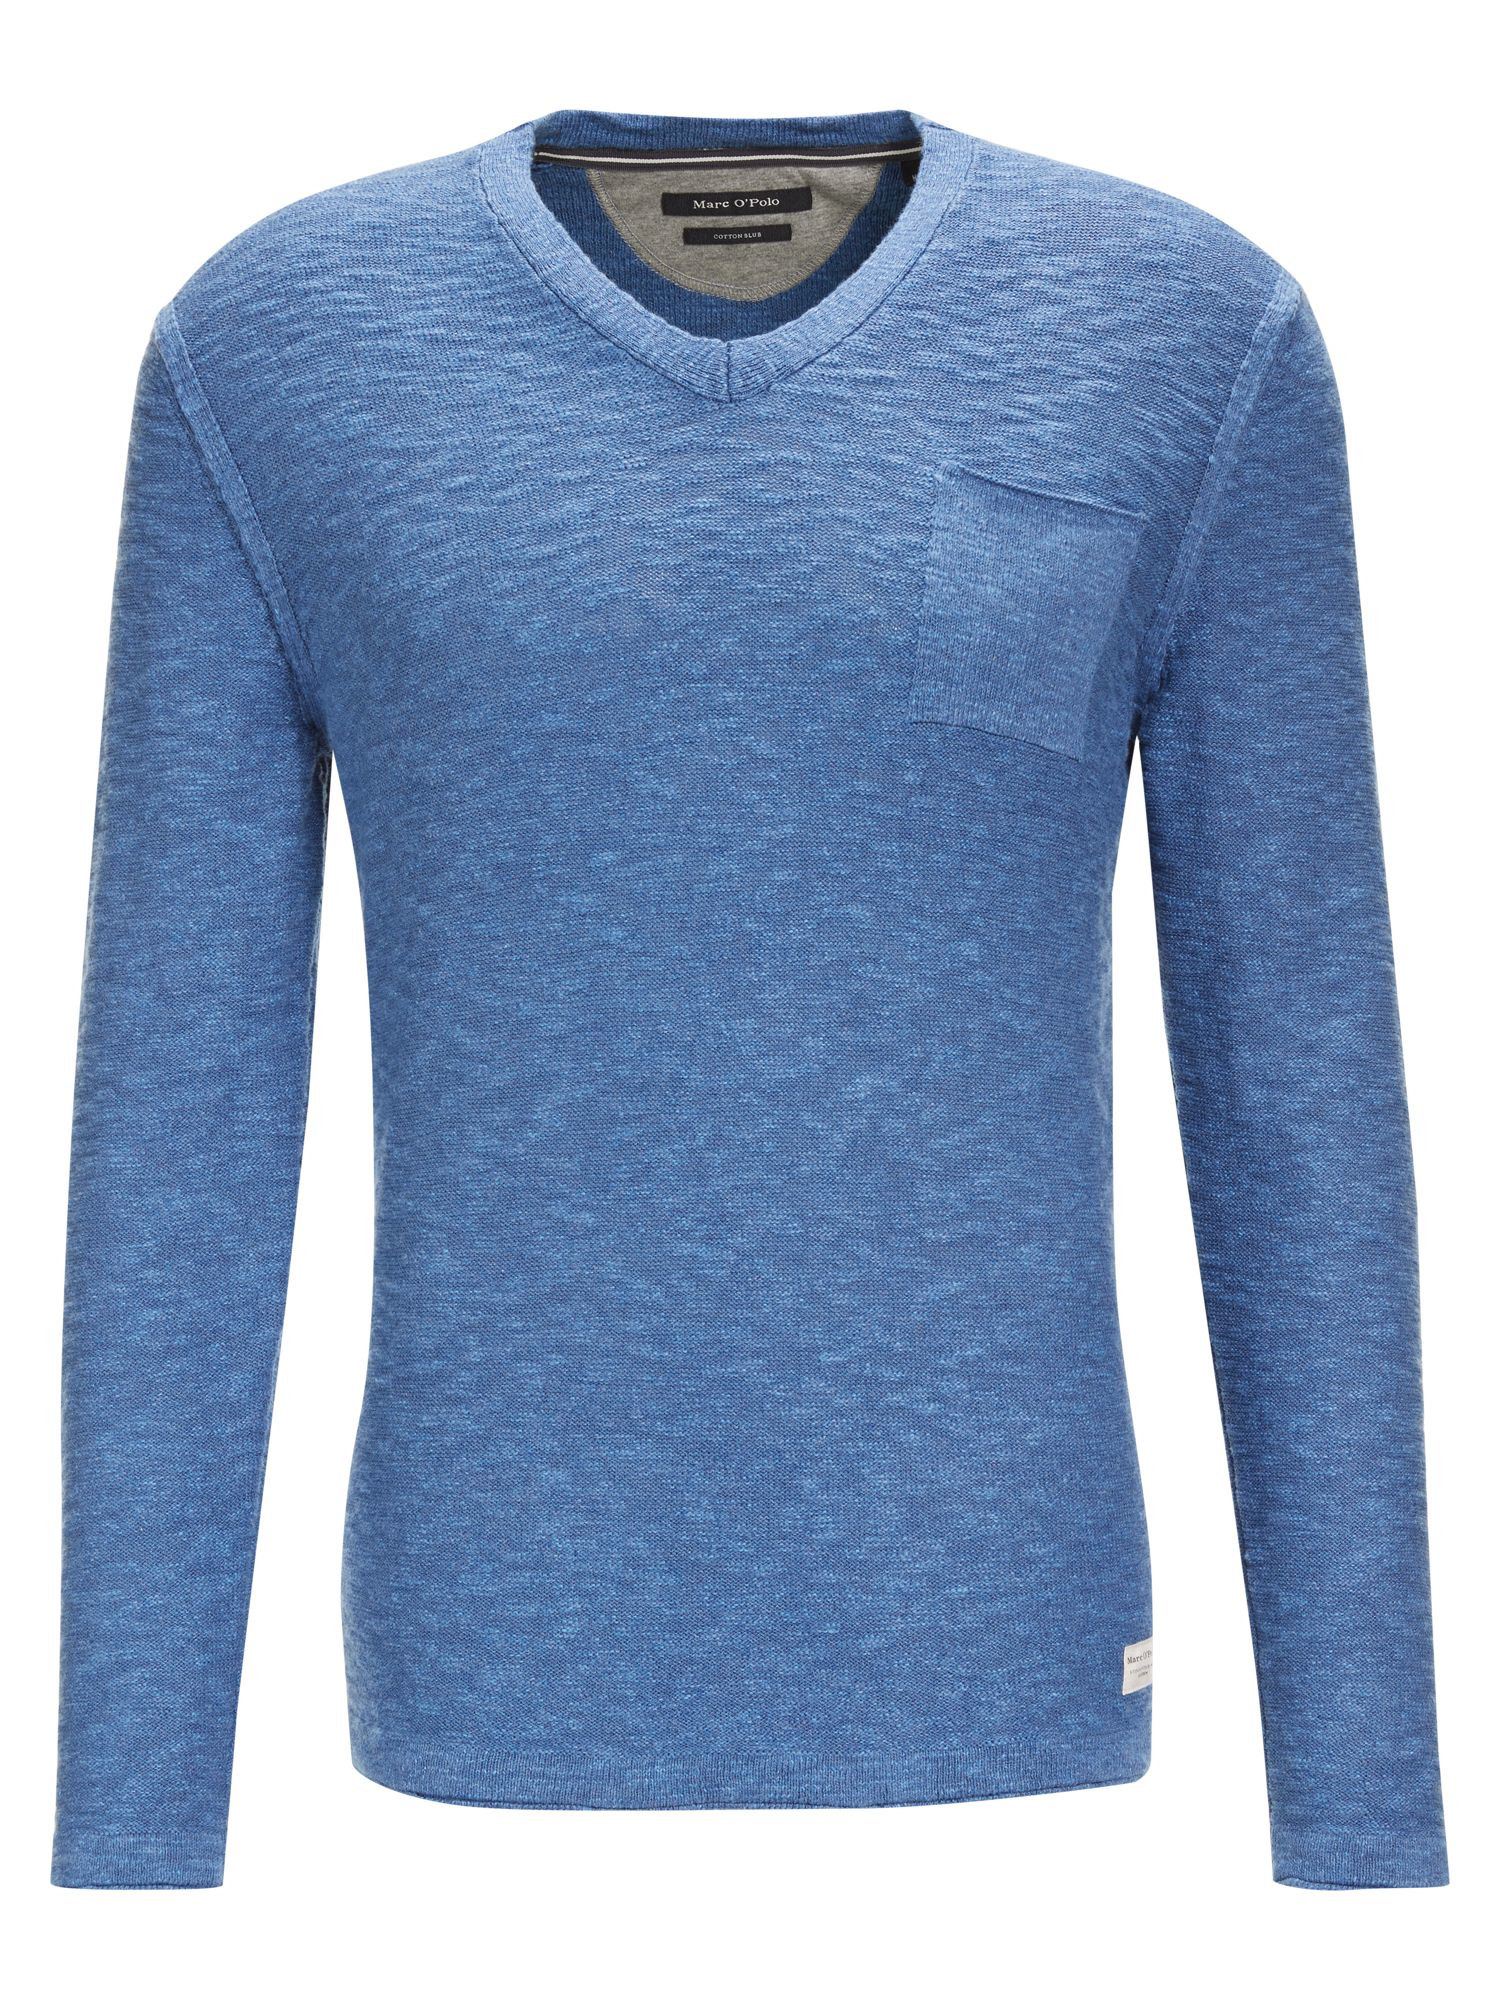 marc o 39 polo knitted sweater in blue for men lyst. Black Bedroom Furniture Sets. Home Design Ideas